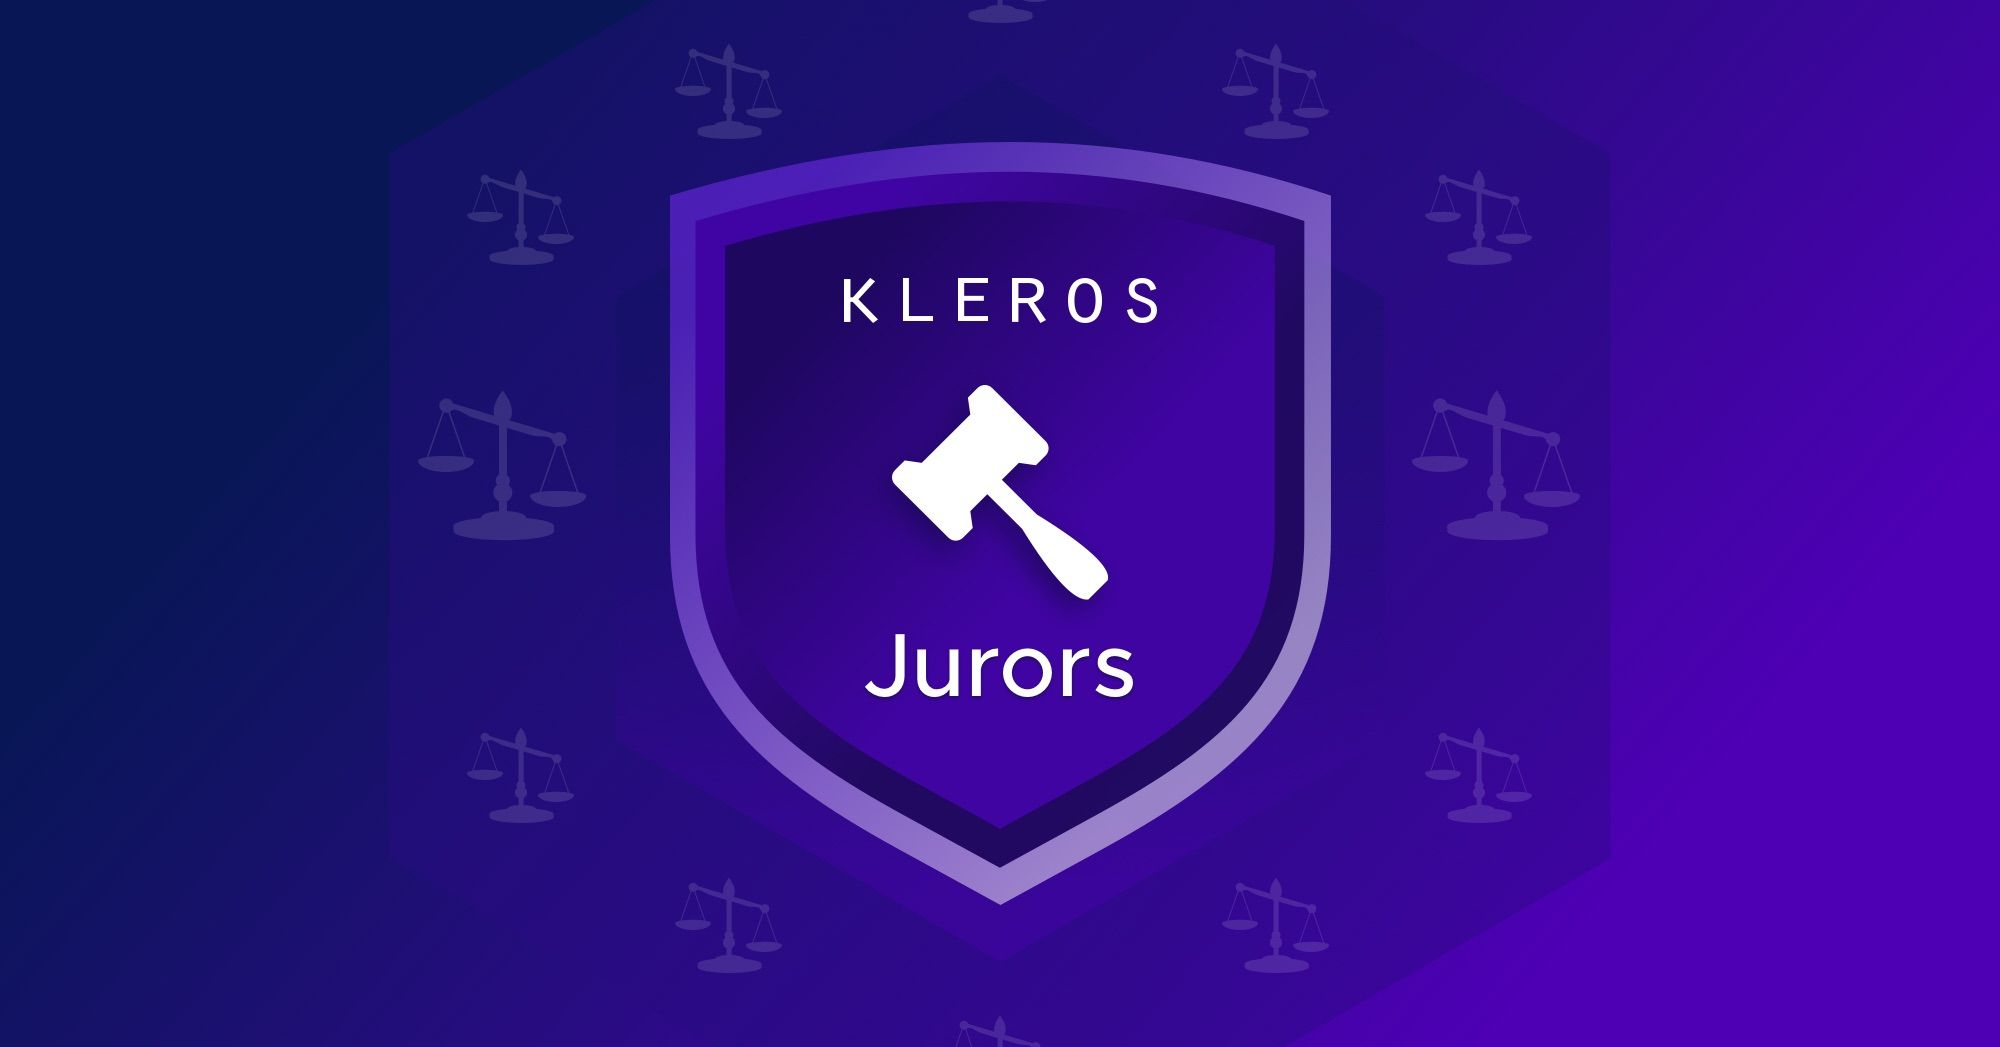 3 Things to Know About Becoming a Kleros Juror